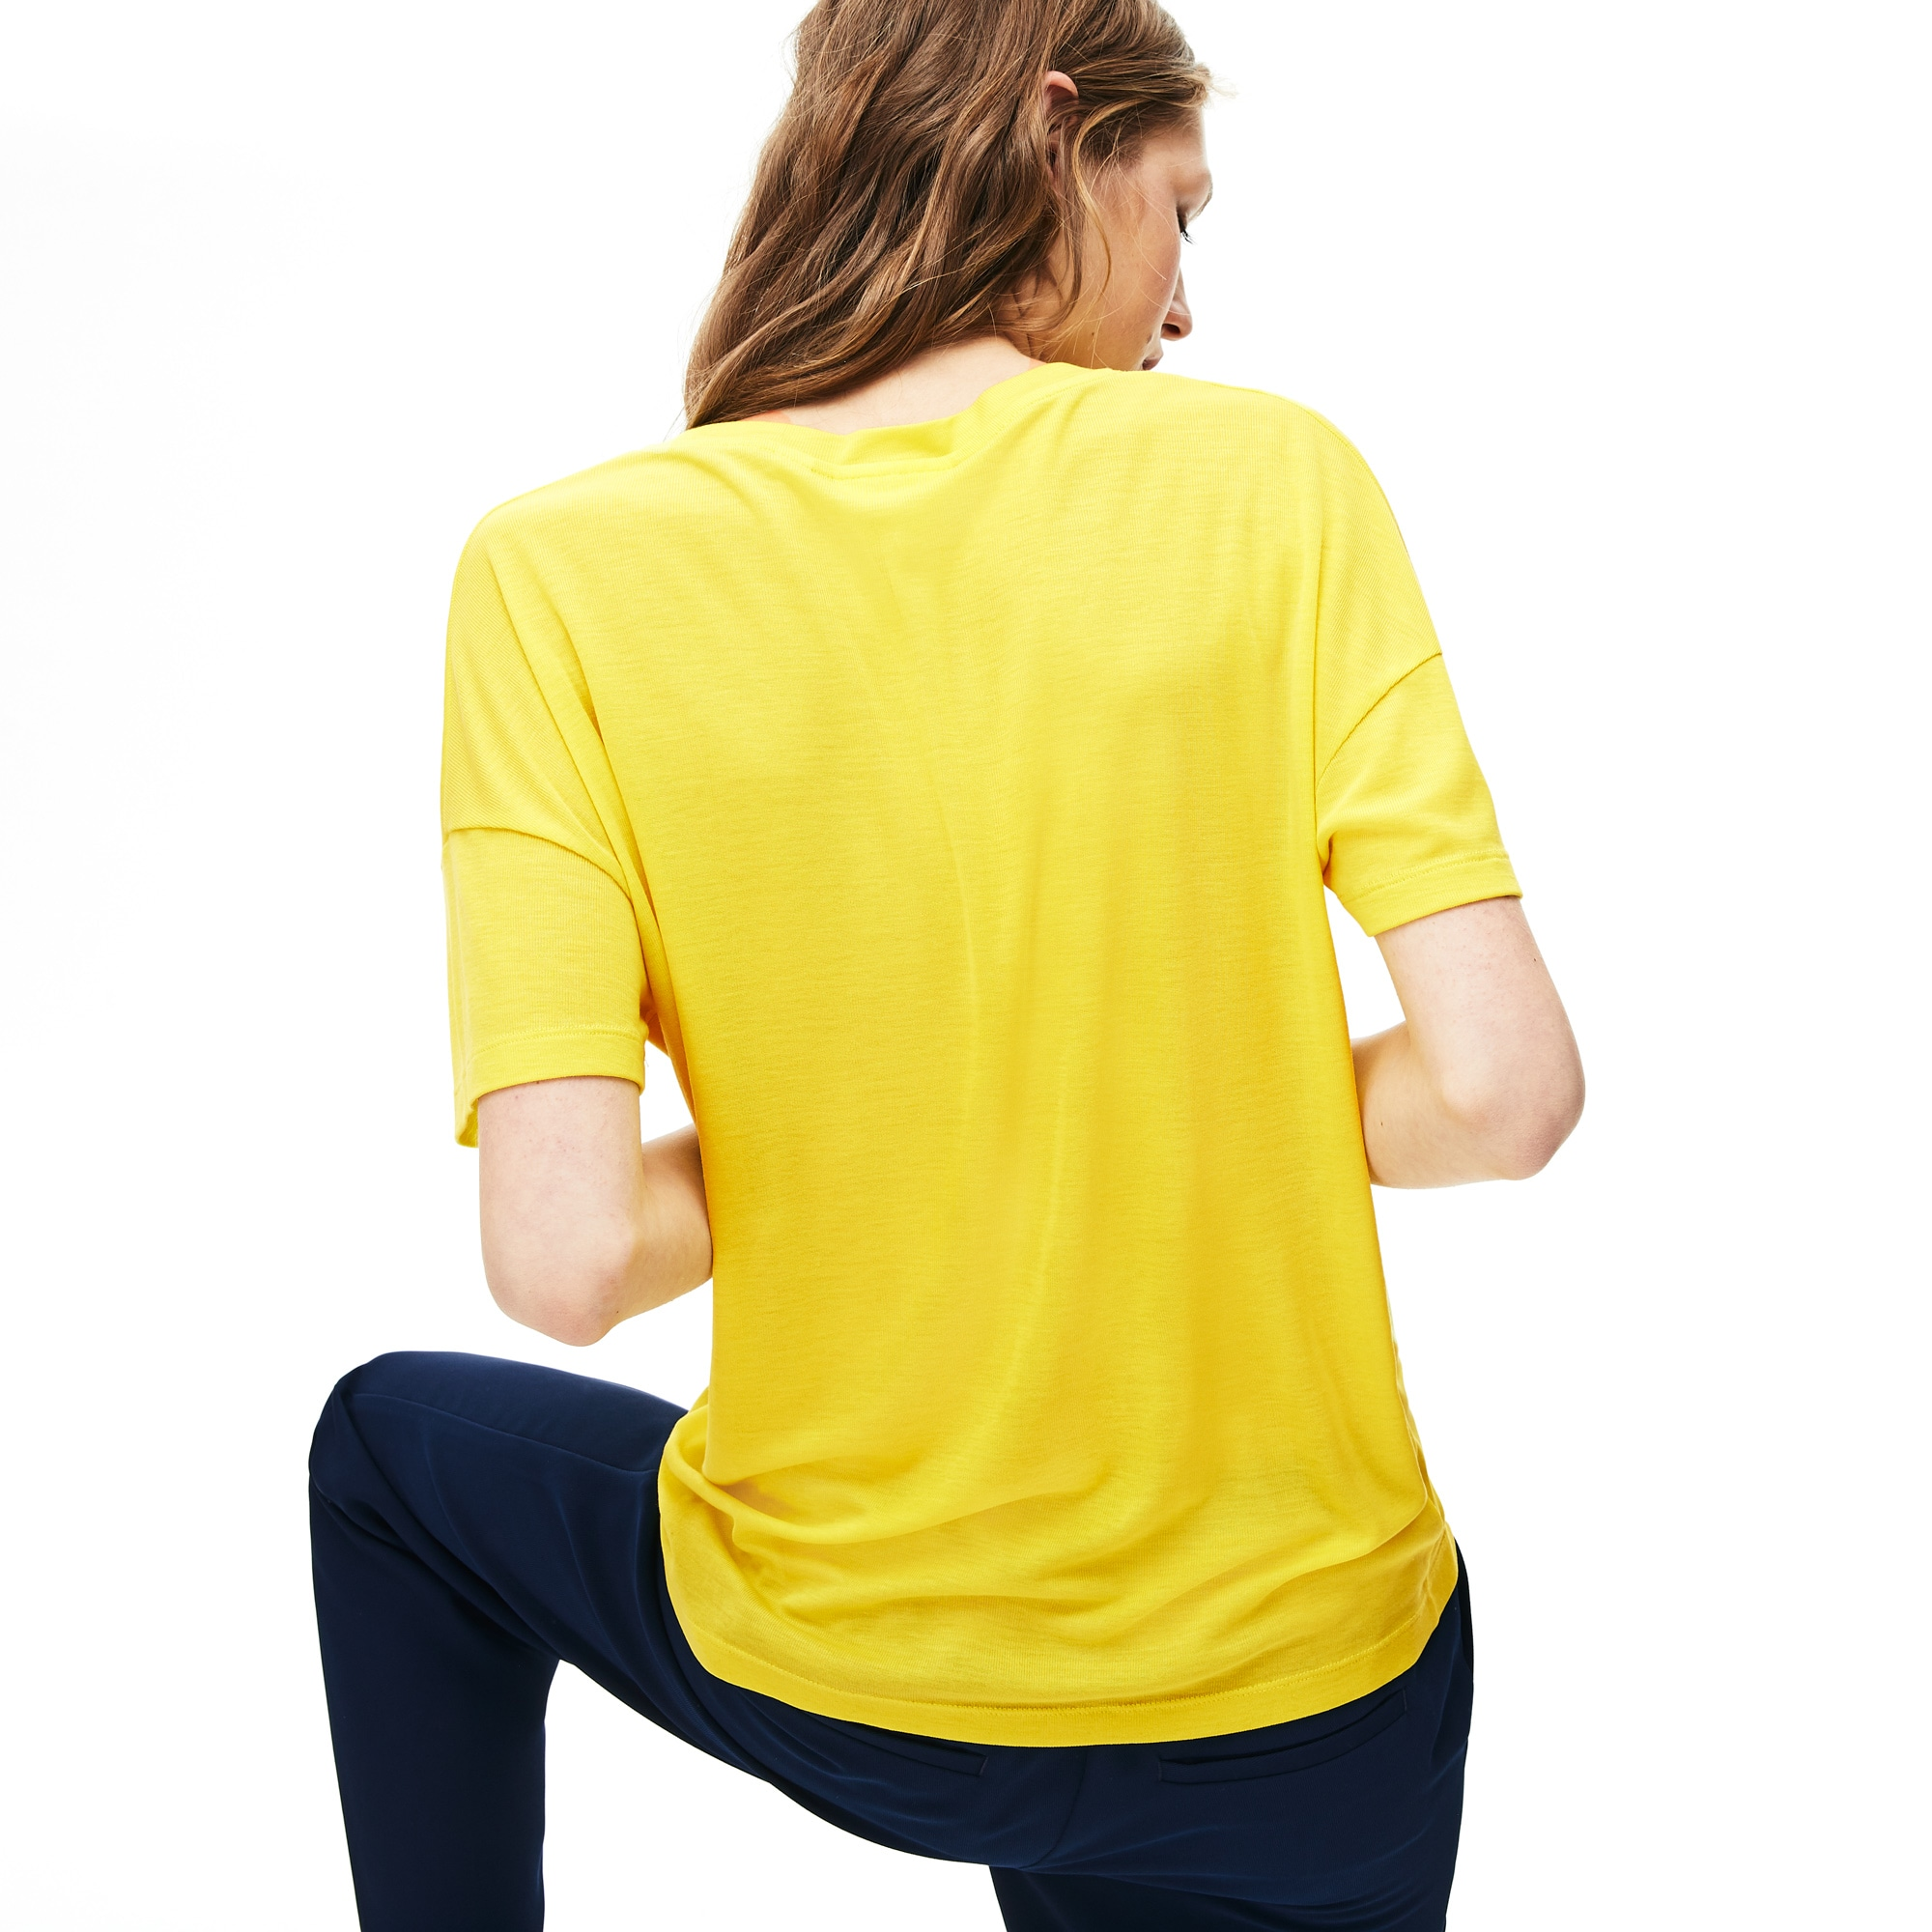 Women's Motion Lightweight Ribbed Lyocell T-Shirt